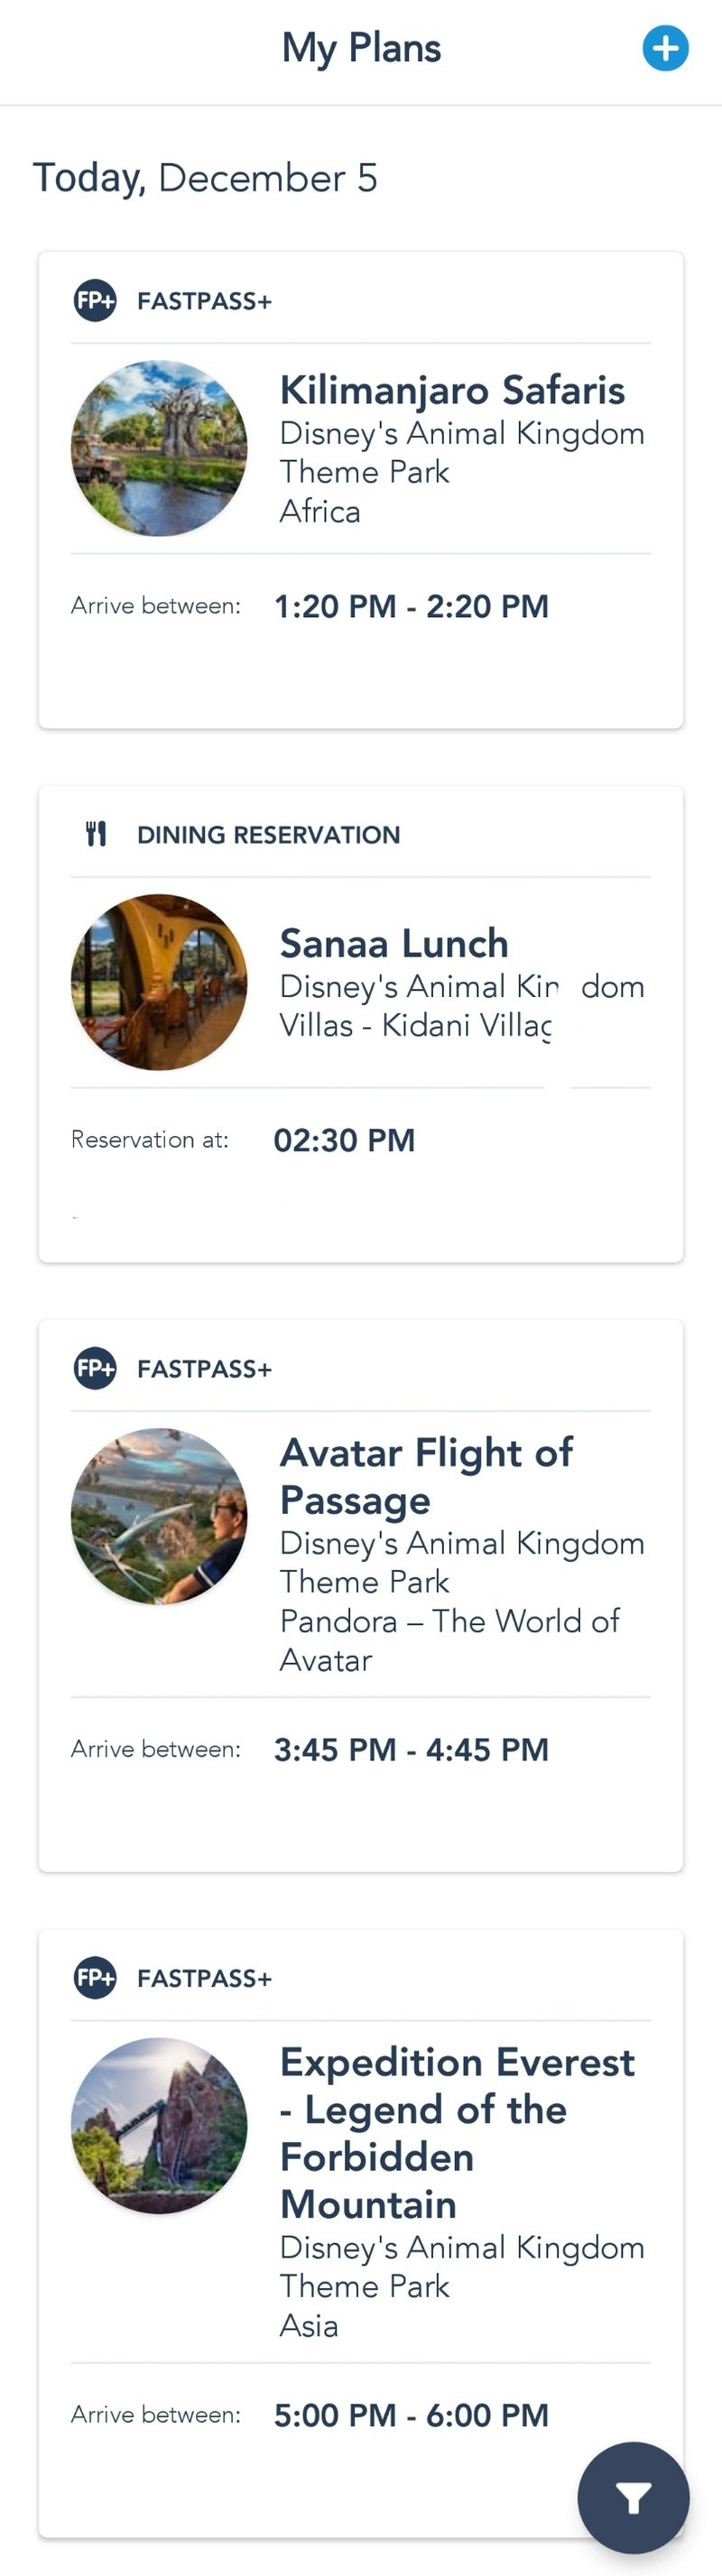 [Walt Disney World Resort] MyMagic+: FastPass+, MyDisneyExperience et MagicBands - Page 43 20181210